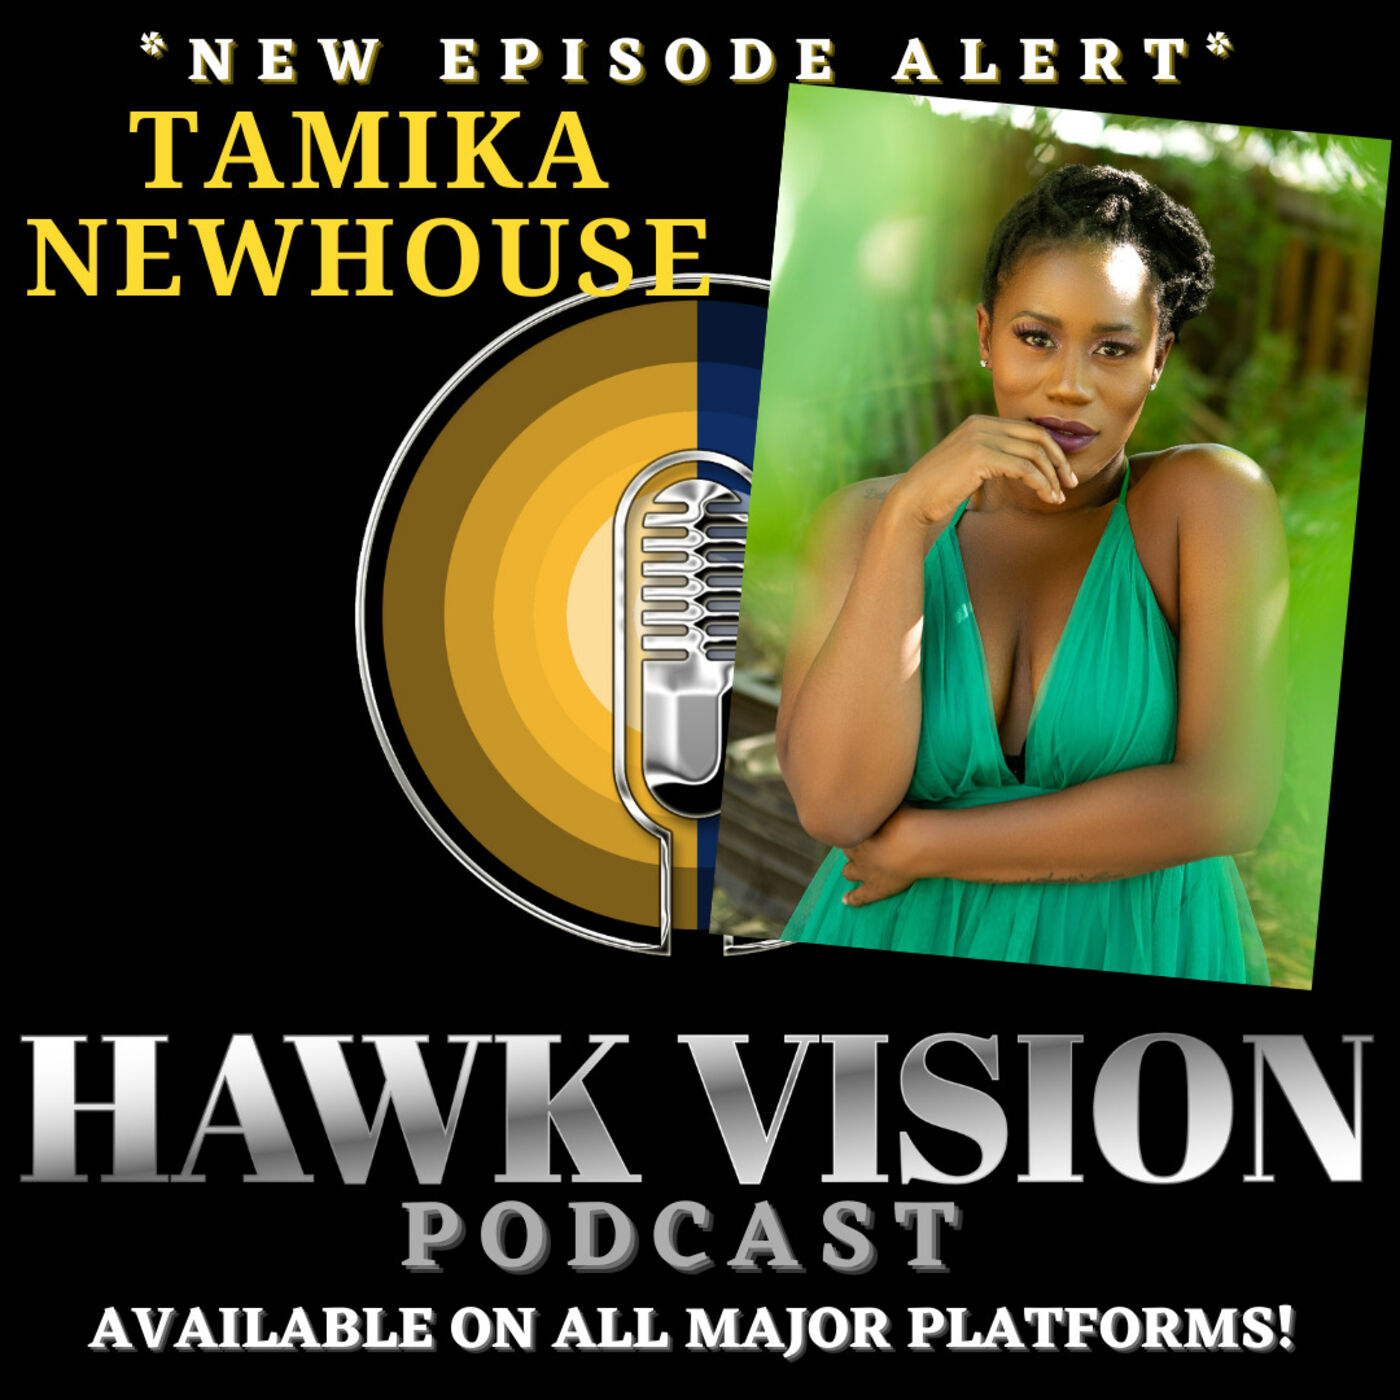 Tamika Newhouse- From Urban Fiction To Real Life Legend